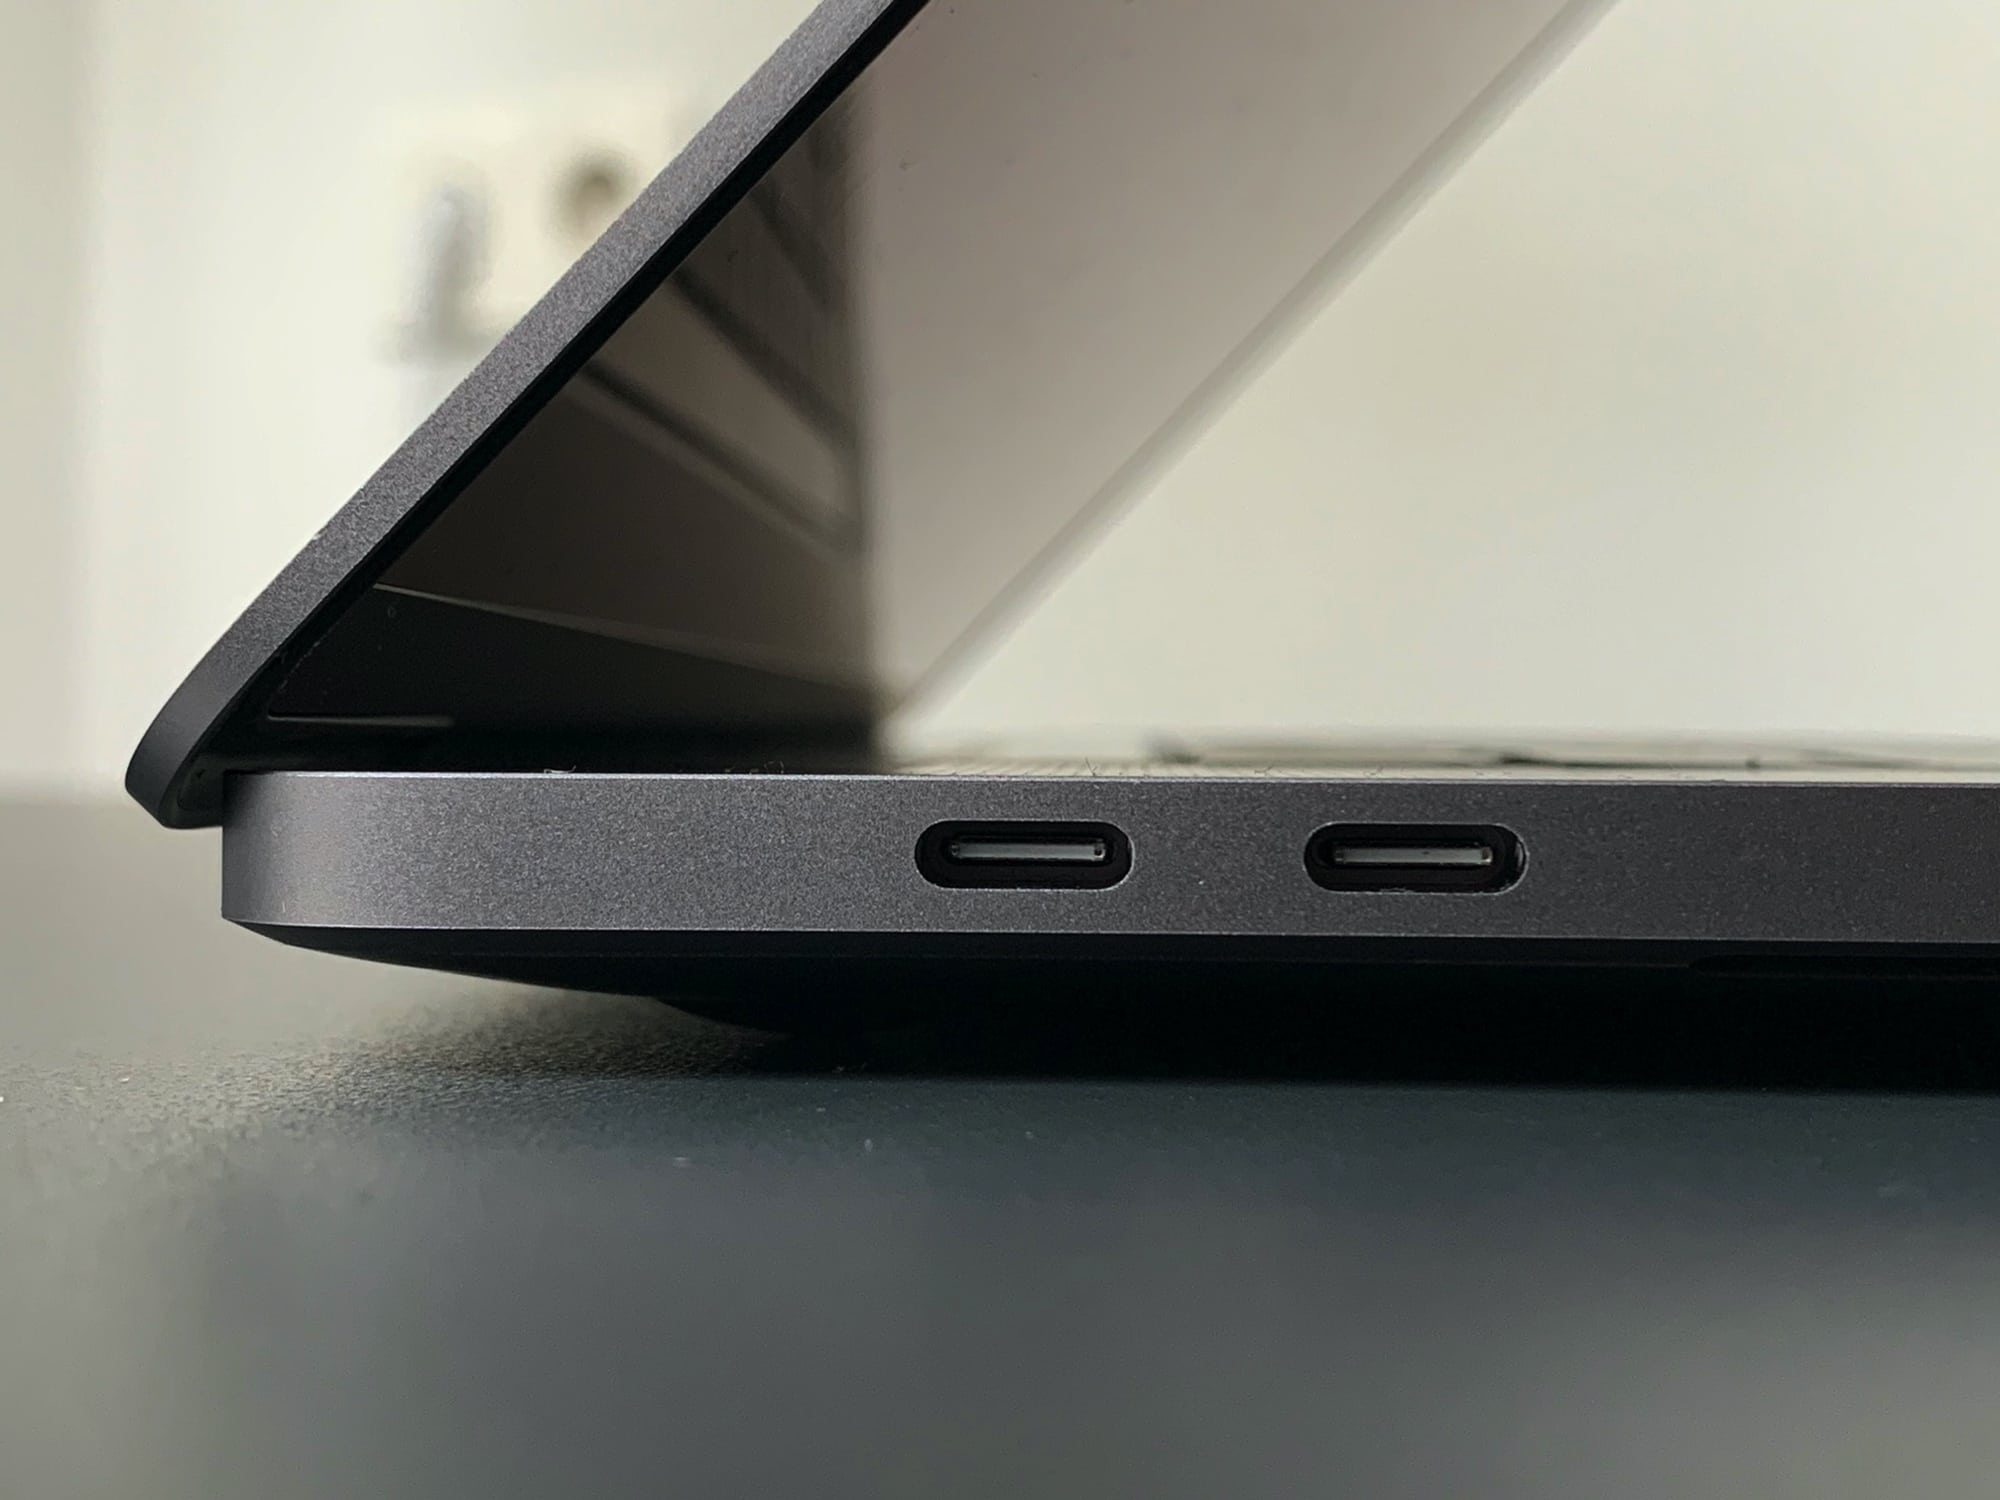 To an iPad user, four USB-C ports are a luxury.